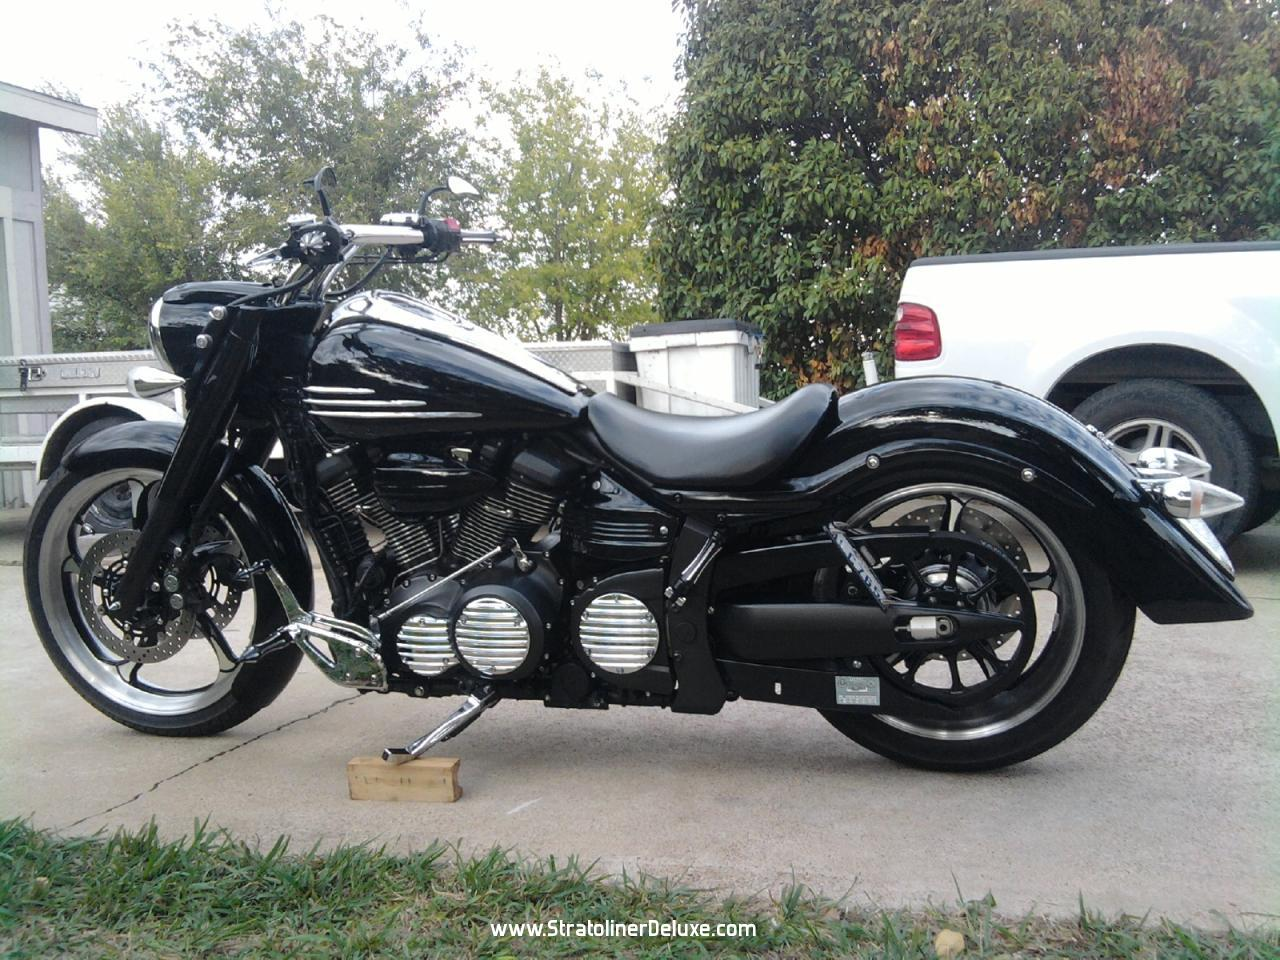 v star 1300 deluxe accessories with Yamaha Roadliner Stratoliner Custom Pictures on The 2014 Harley Davidson Softail Deluxe Revealed Photo Gallery 65942 as well Yamaha V Star 650 Trike Kit besides Motorcycles Yamaha V Star 1300 Deluxe 2016 Huron OH 73f0cfab Cb2b 4cfe 94eb A52b004a73d6G likewise B00KJIAM3I likewise Yamaha Wr250f 13.